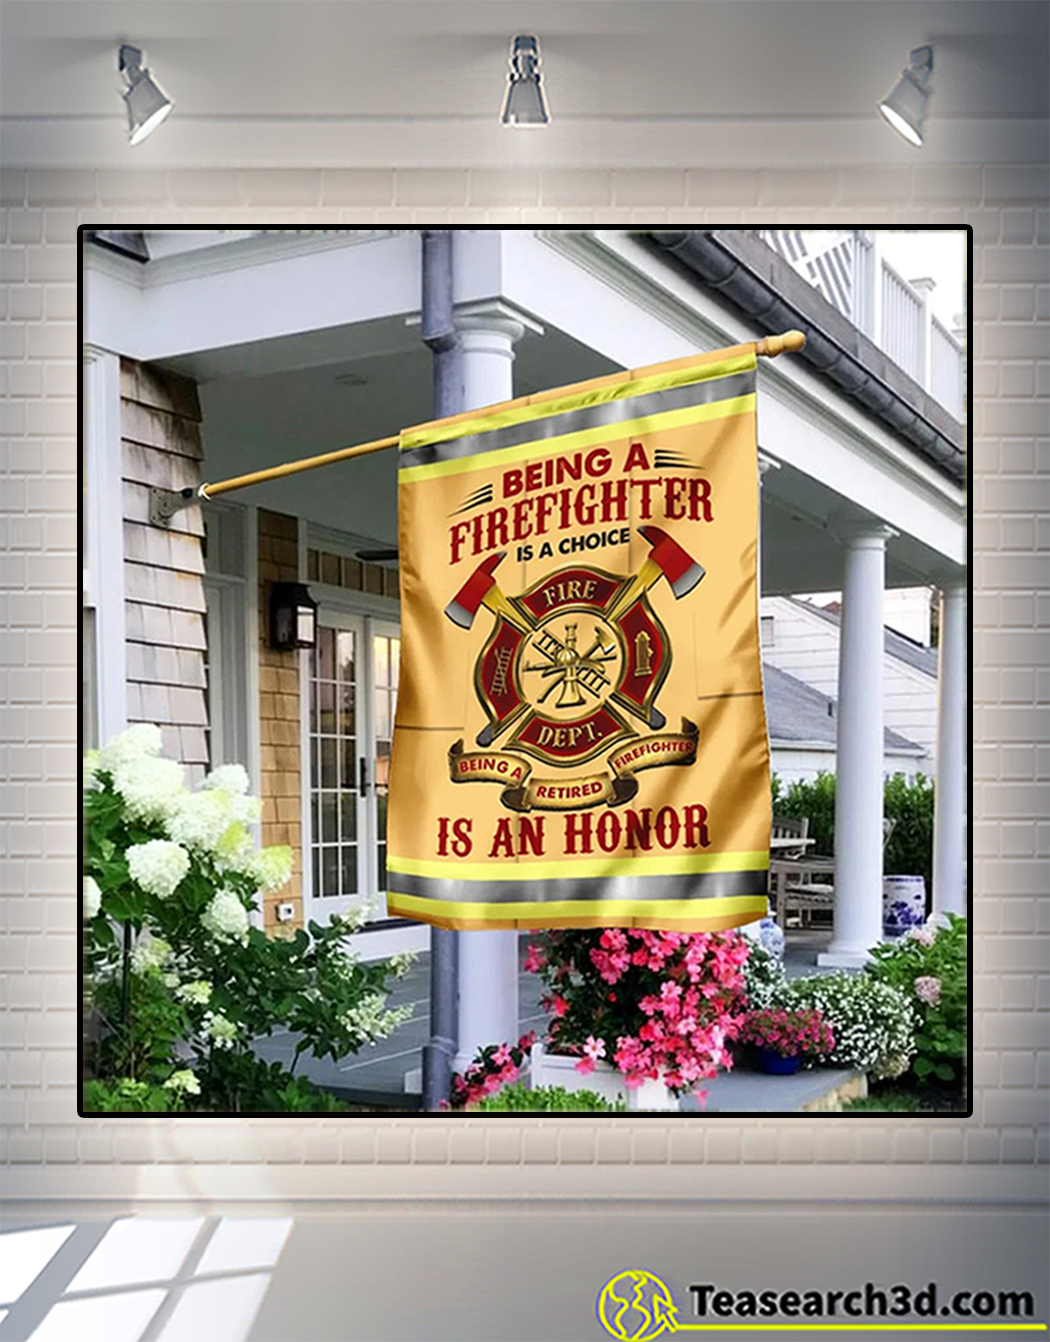 Being a firefighter is an honor flag